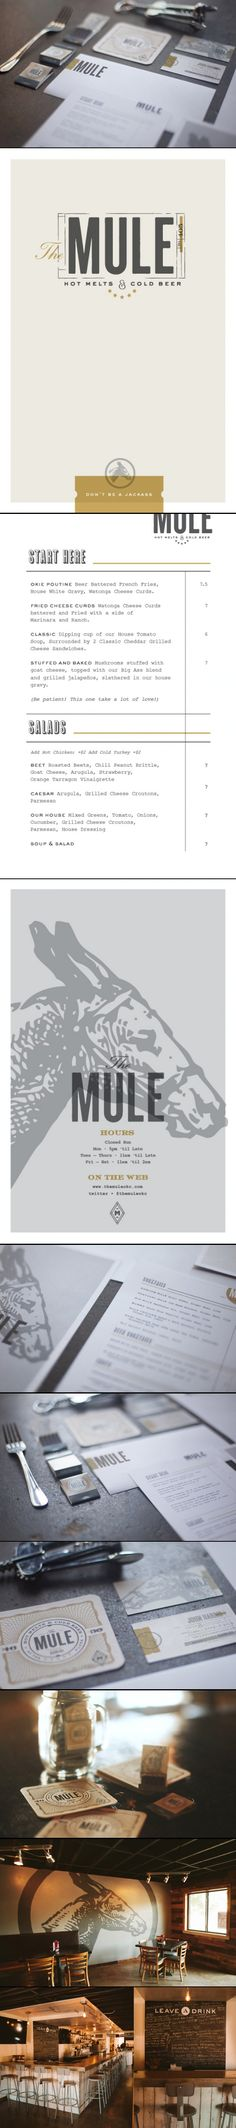 The Mule menu & restaurant branding (by Foundry Collective)                                                                                                                                                     More